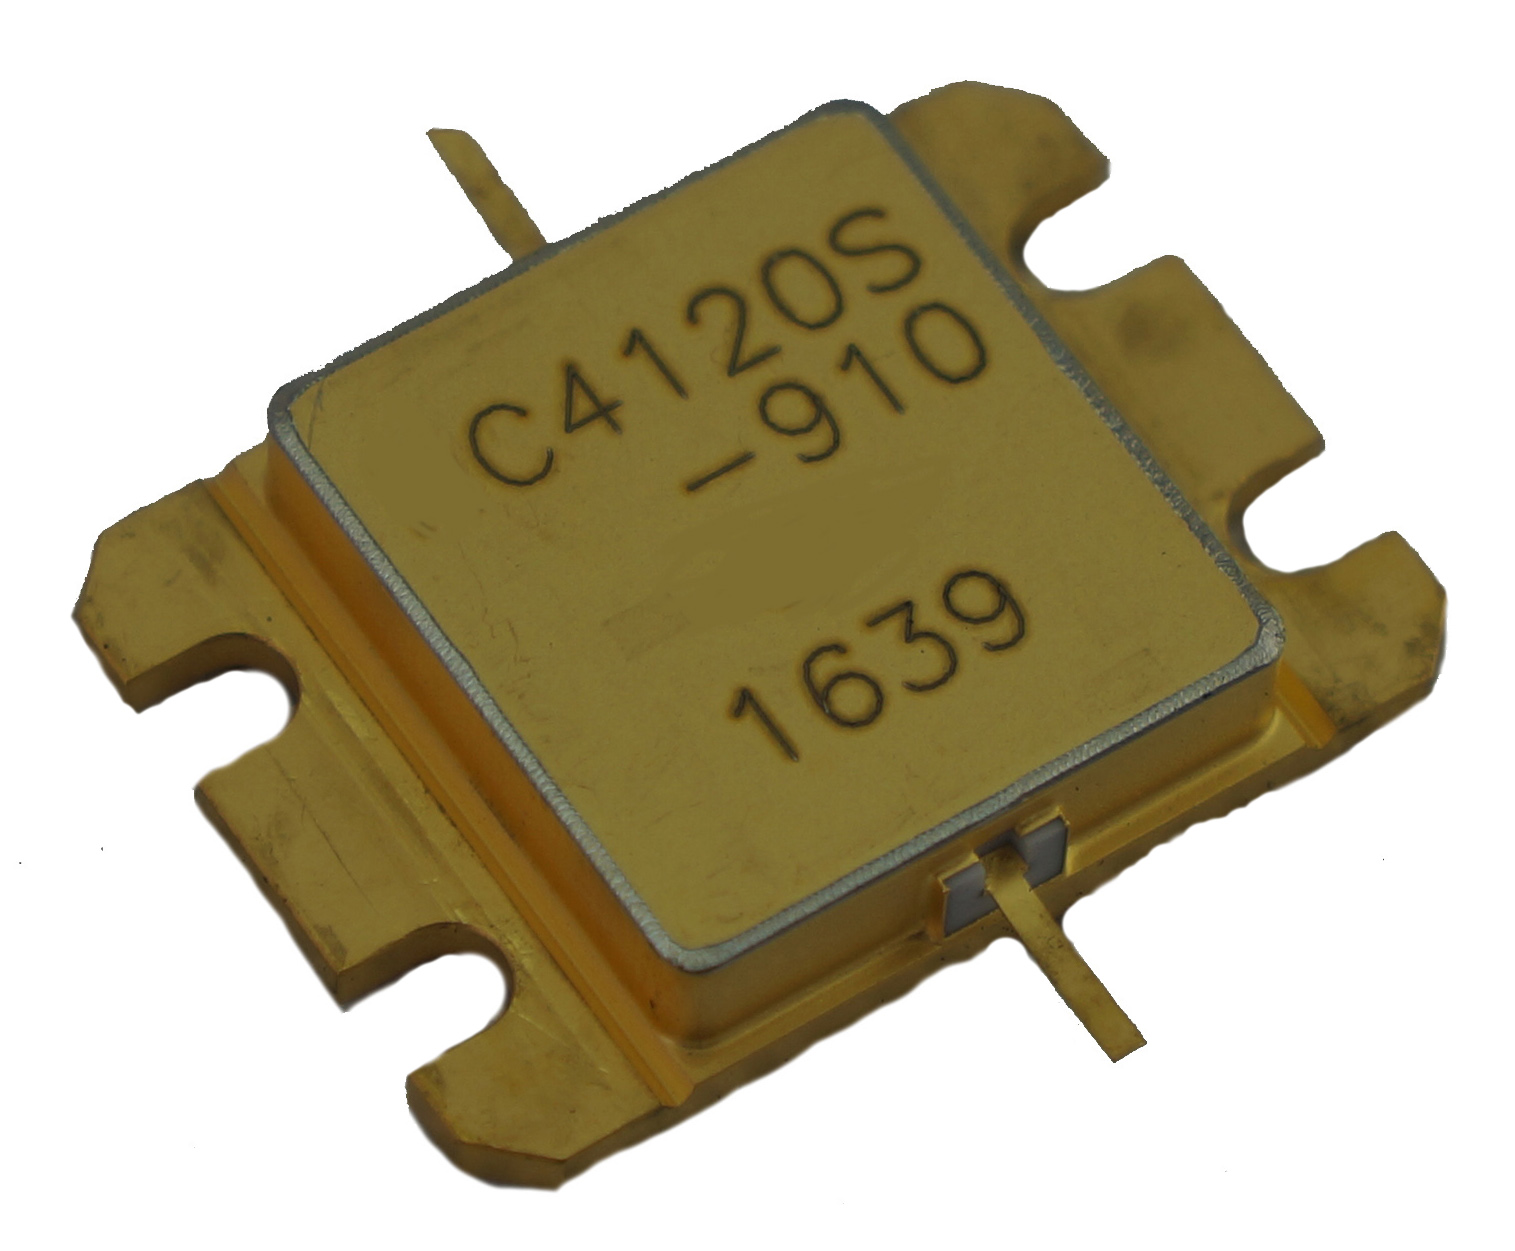 Hisiwell 3.1-3.4ghz 4w Gaas Rf Microwave Power Transistor China Rf  Microwave Millimeter Wave Electronic Component Device - Buy Rf Microwave  Power Transistor For Power Amplifier Microwave Communication Transceiver  Receiver Electronic Warfare,Electronic ...